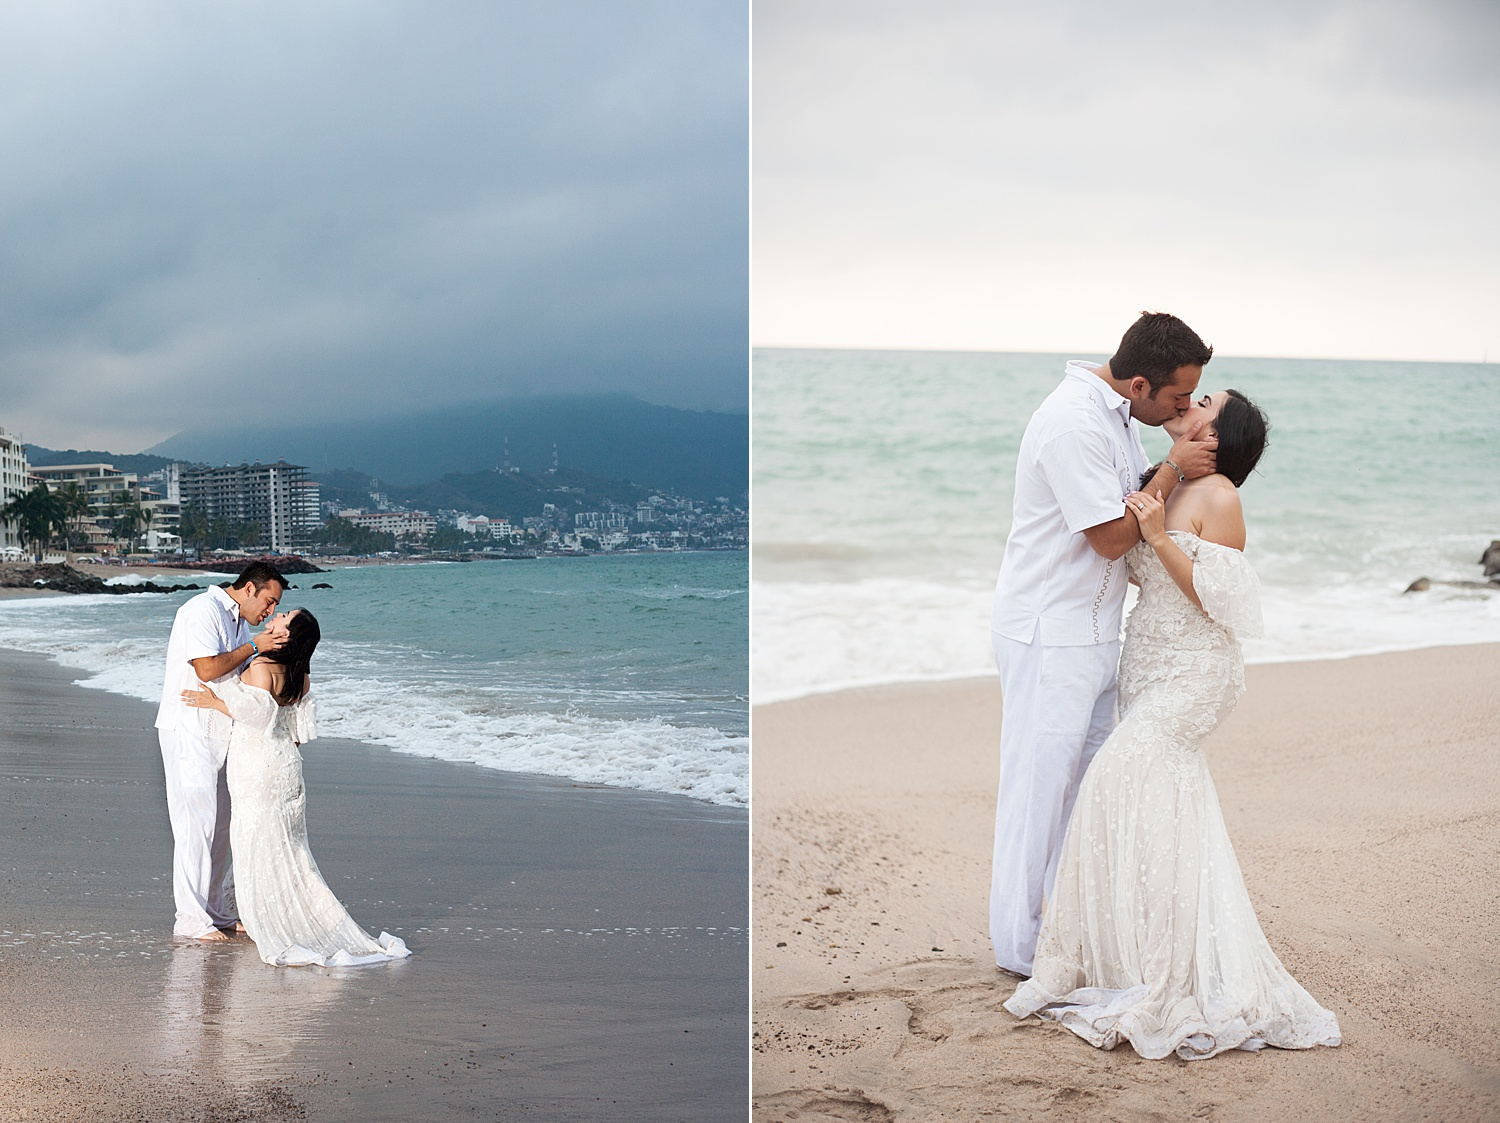 Image: In the photo on the left, I used one flash off-camera to camera right near the couple. On the...